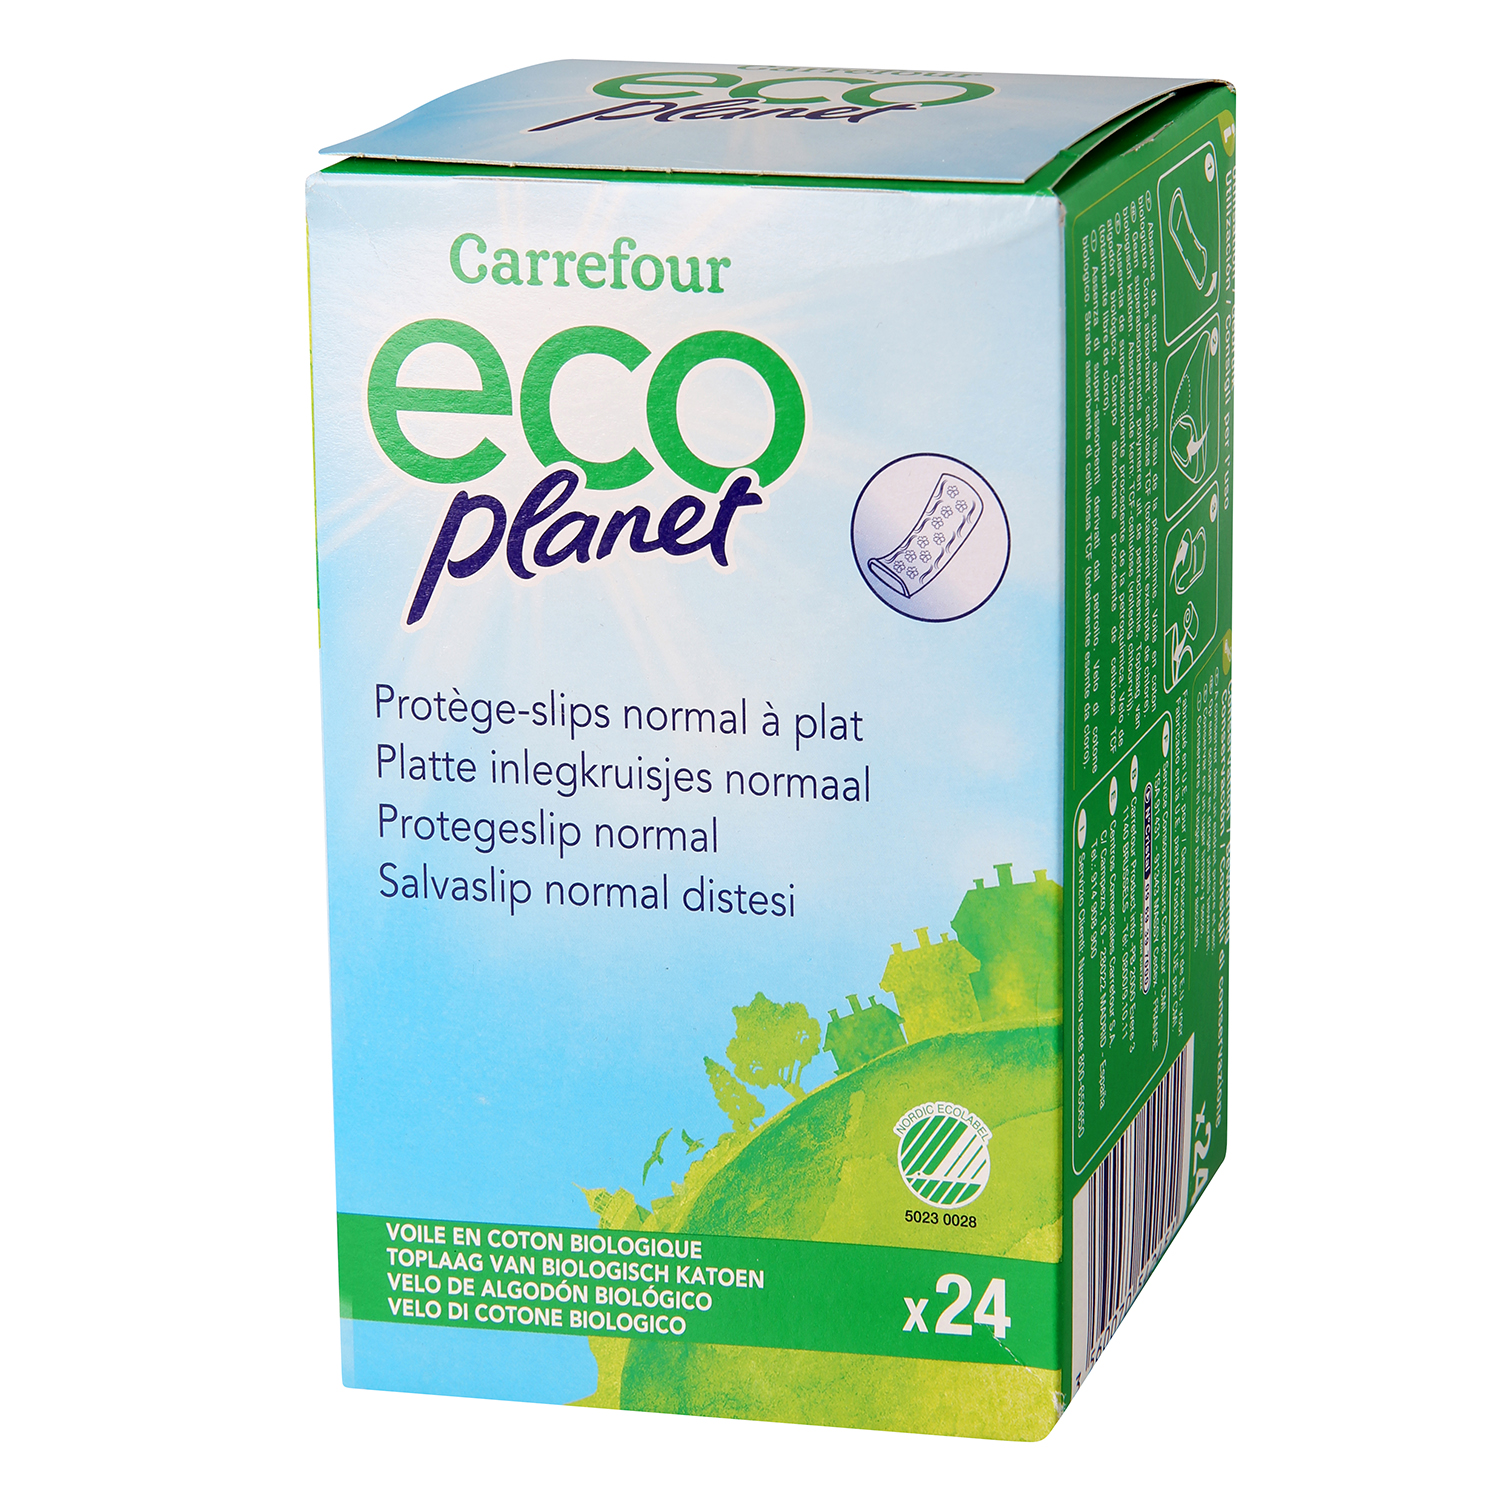 Protegeslip normal ecológico Carrefour Eco Planet 24 ud.